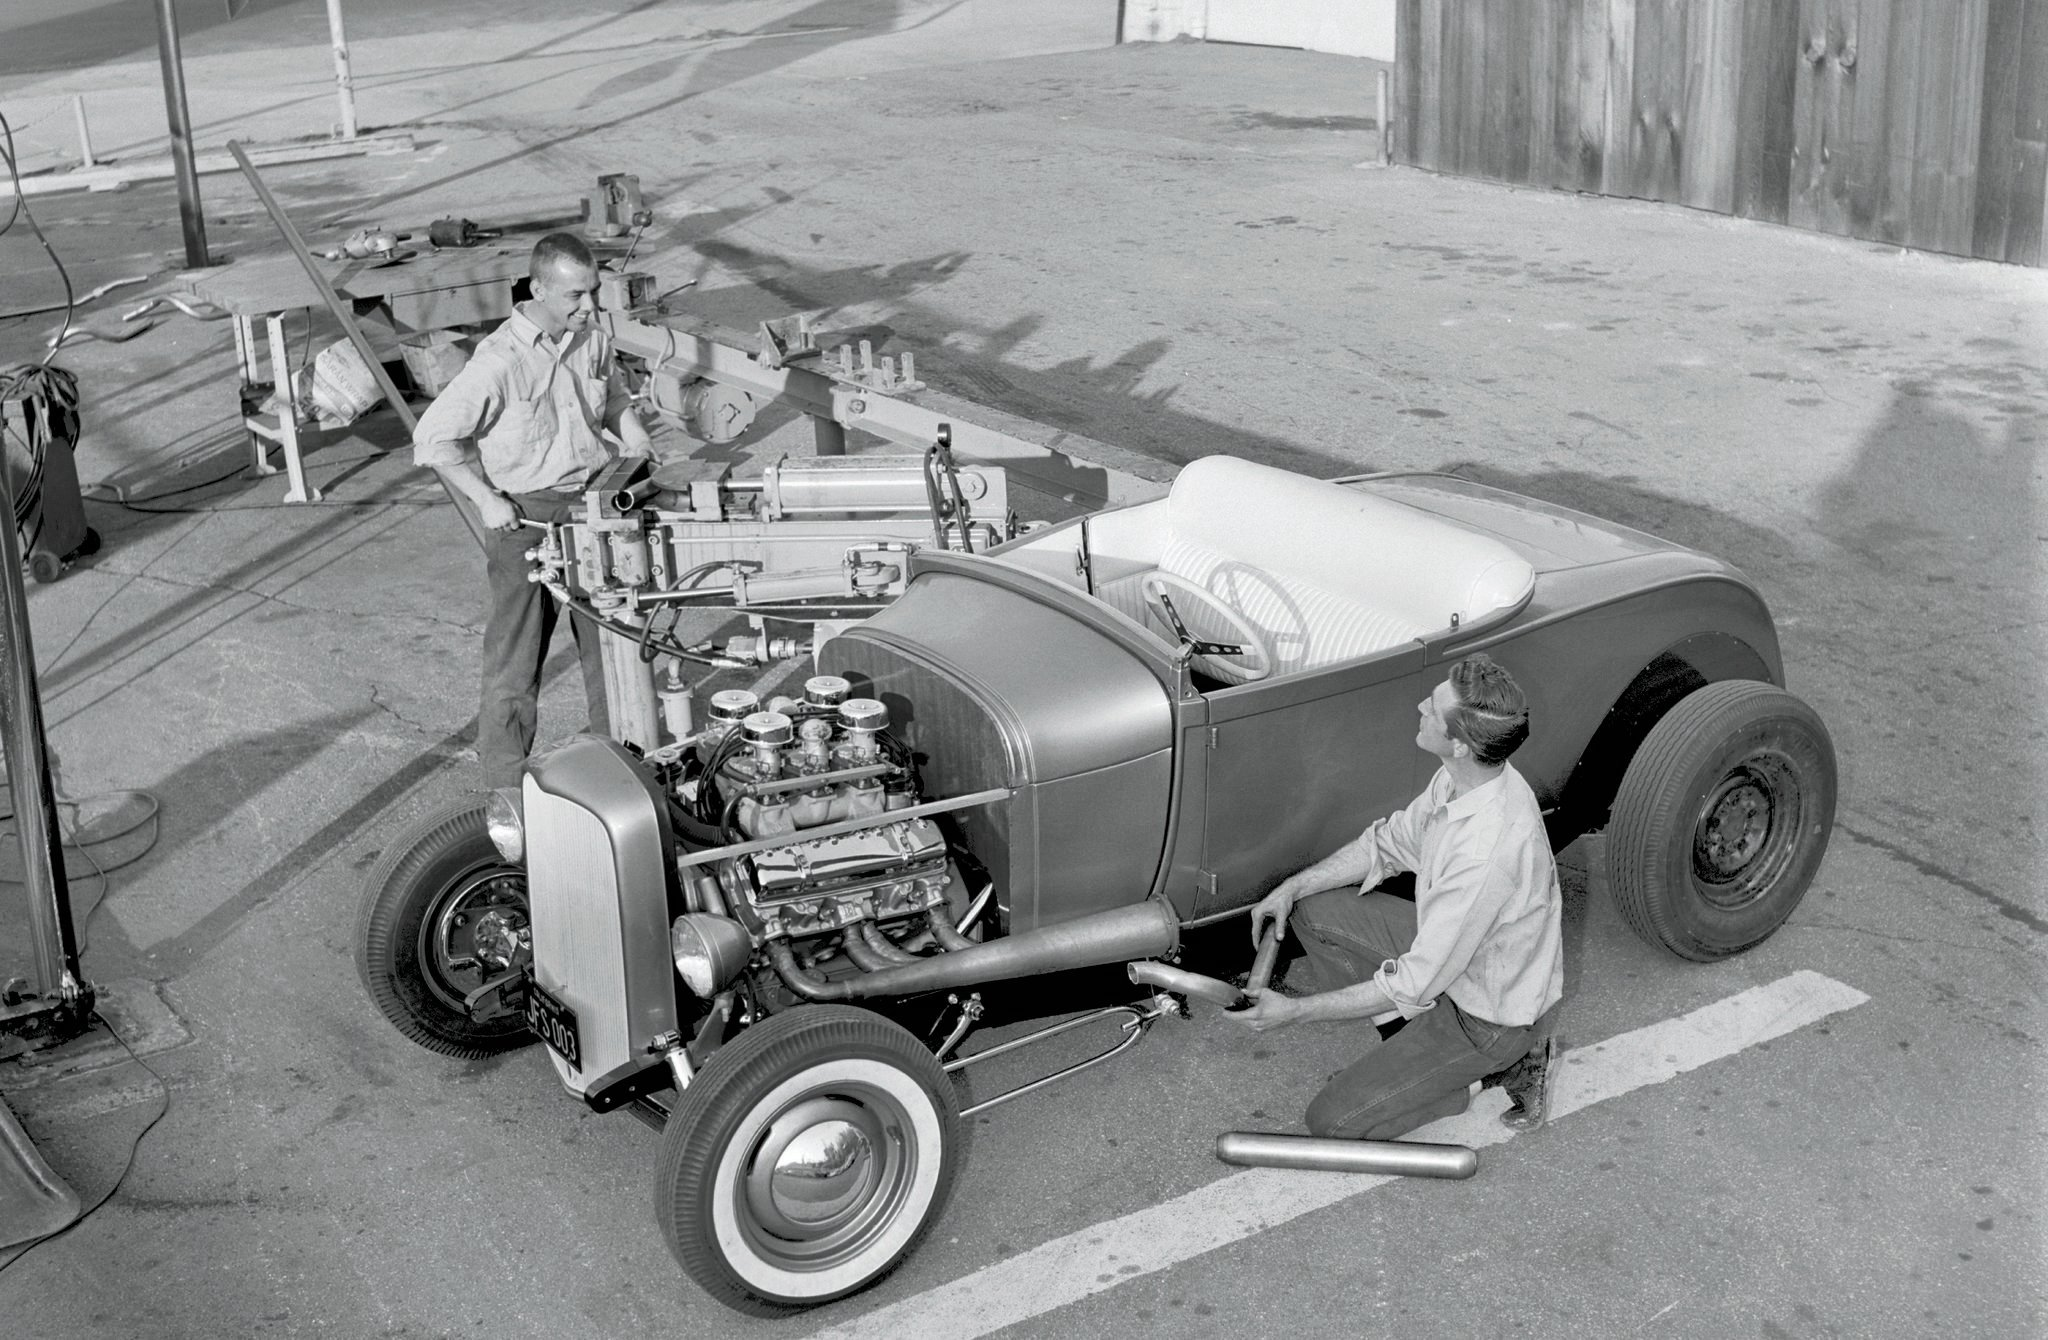 """The first time we see Sam's entire car in HRM is in the June '63 issue, when those """"Wild Outdoor Headers"""" were built. Closest to Tex's camera is Bobby Barr, owner of the muffler shop where the work was done. At the bender is co-worker Jerry Eames. At this stage, Sam and Scritch had yet to repaint the car in its final, Diplomat Blue hue."""